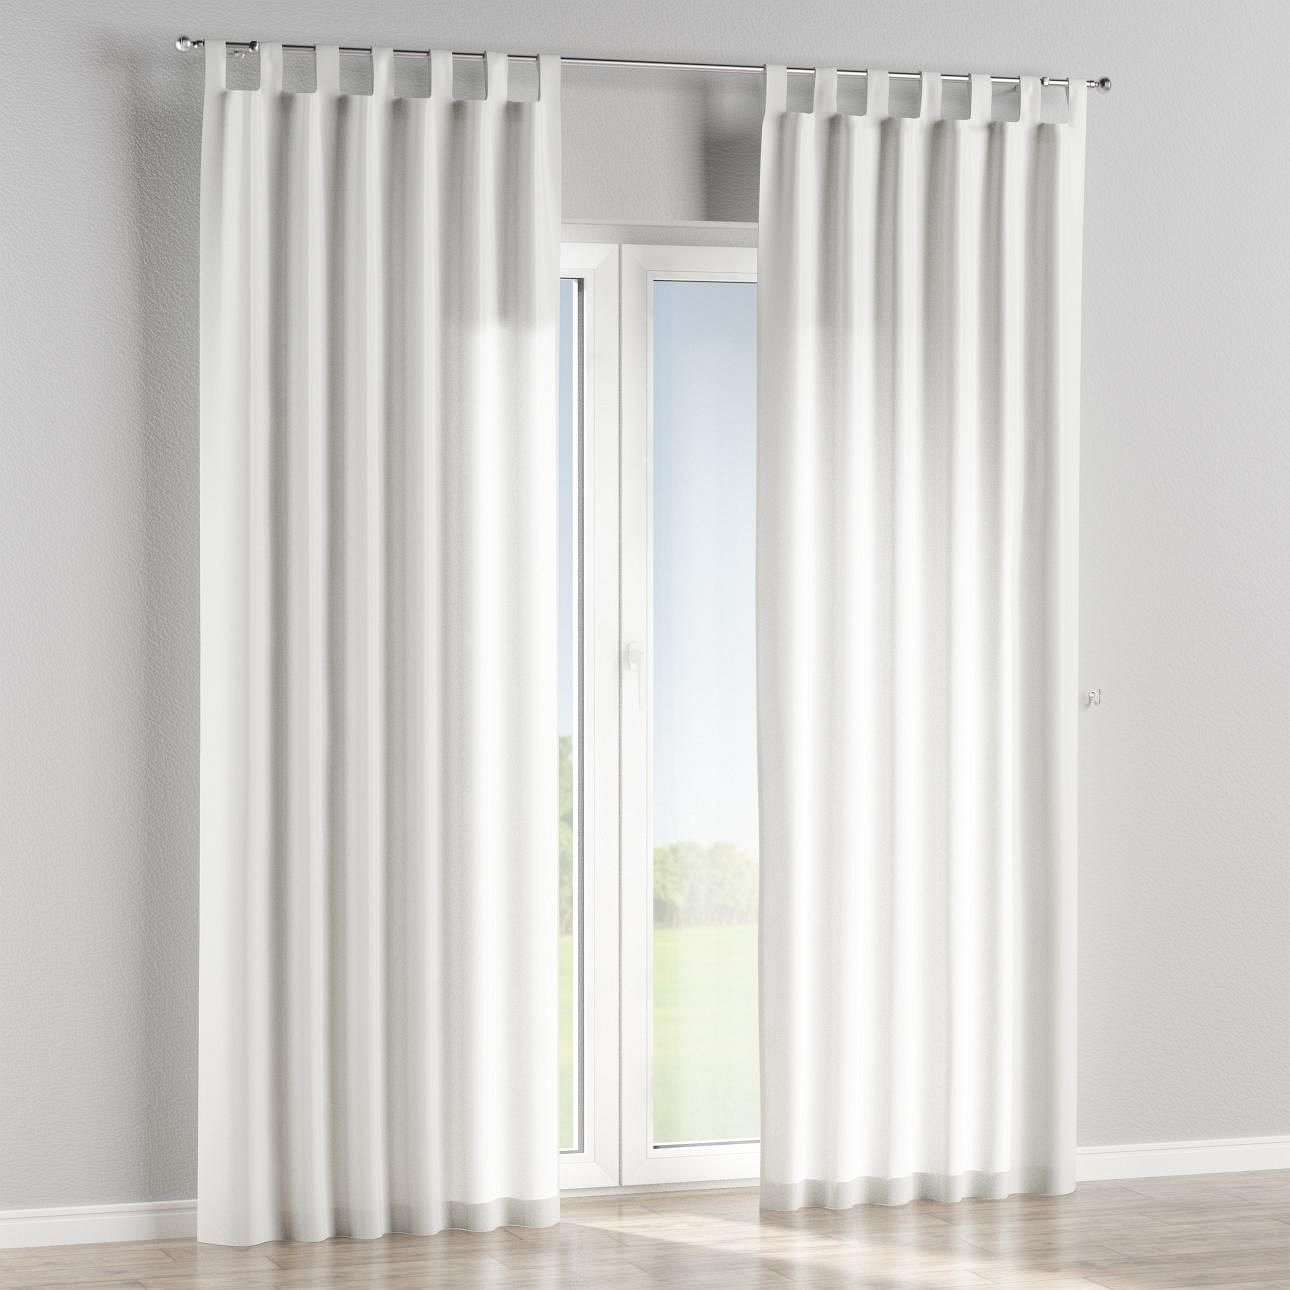 Tab top curtains in collection SALE, fabric: 130-05